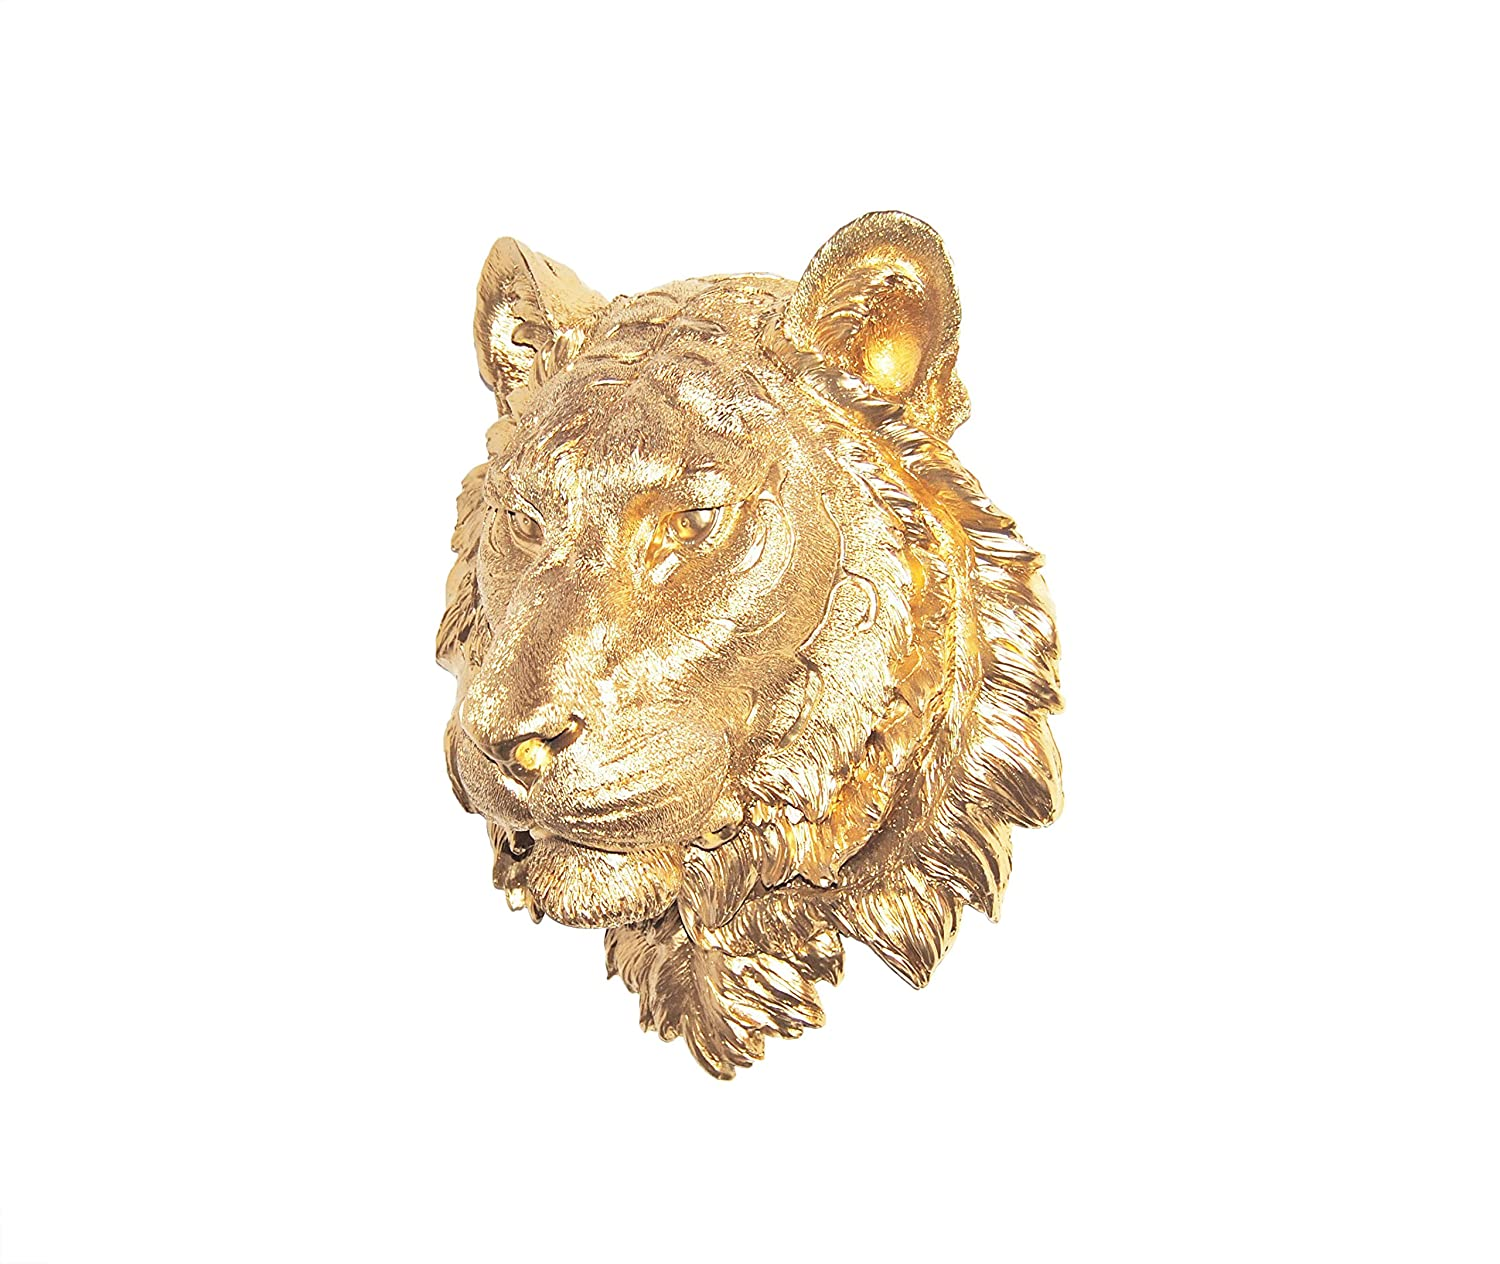 Amazon.com: Near and Deer Faux Taxidermy Tiger Wall Mount, Gold ...